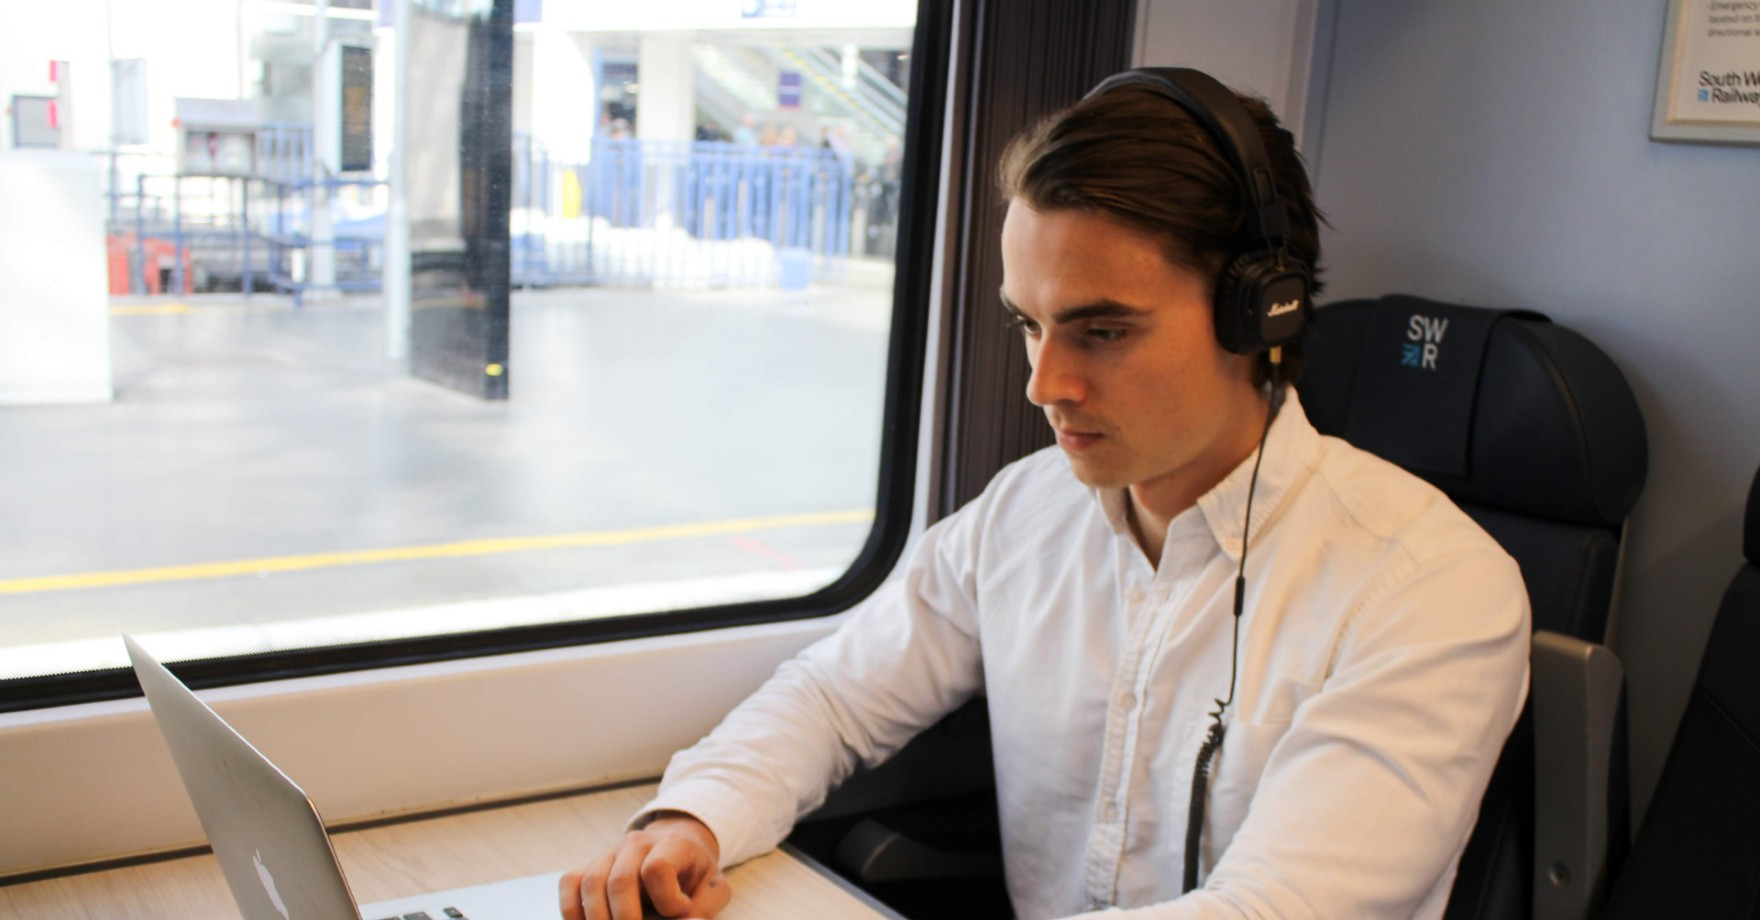 Hinterview announces crowdfunding campaign - but how does it work?